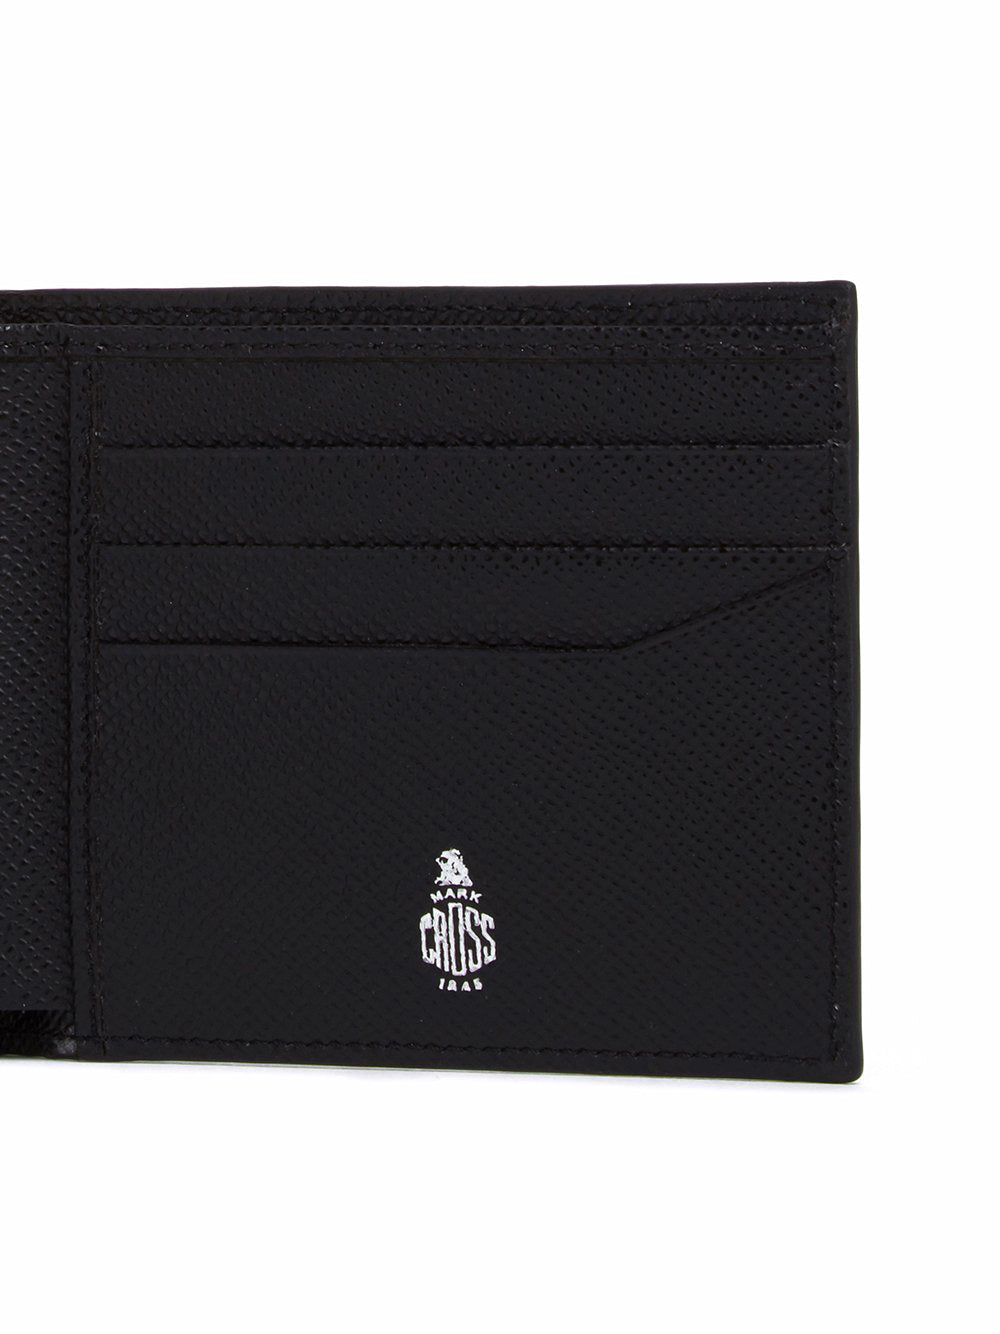 Mark Cross Bi-Fold Leather Wallet Saffiano Black Detail